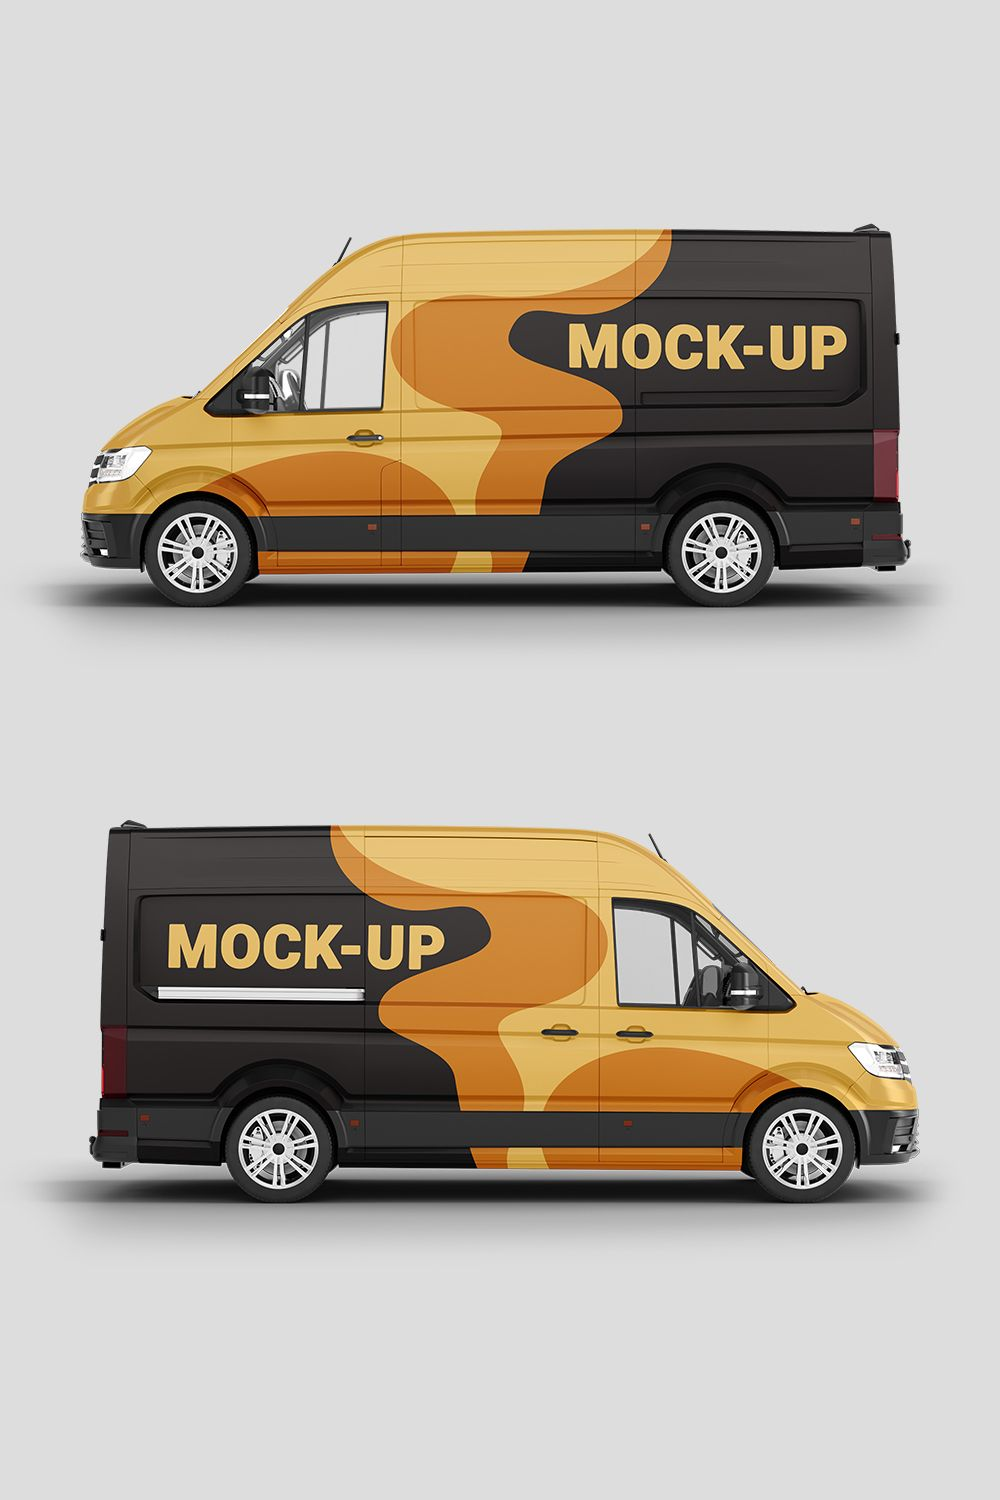 Mobile Car Painting : mobile, painting, Mockup, Vehicle, Signage,, Crafter,